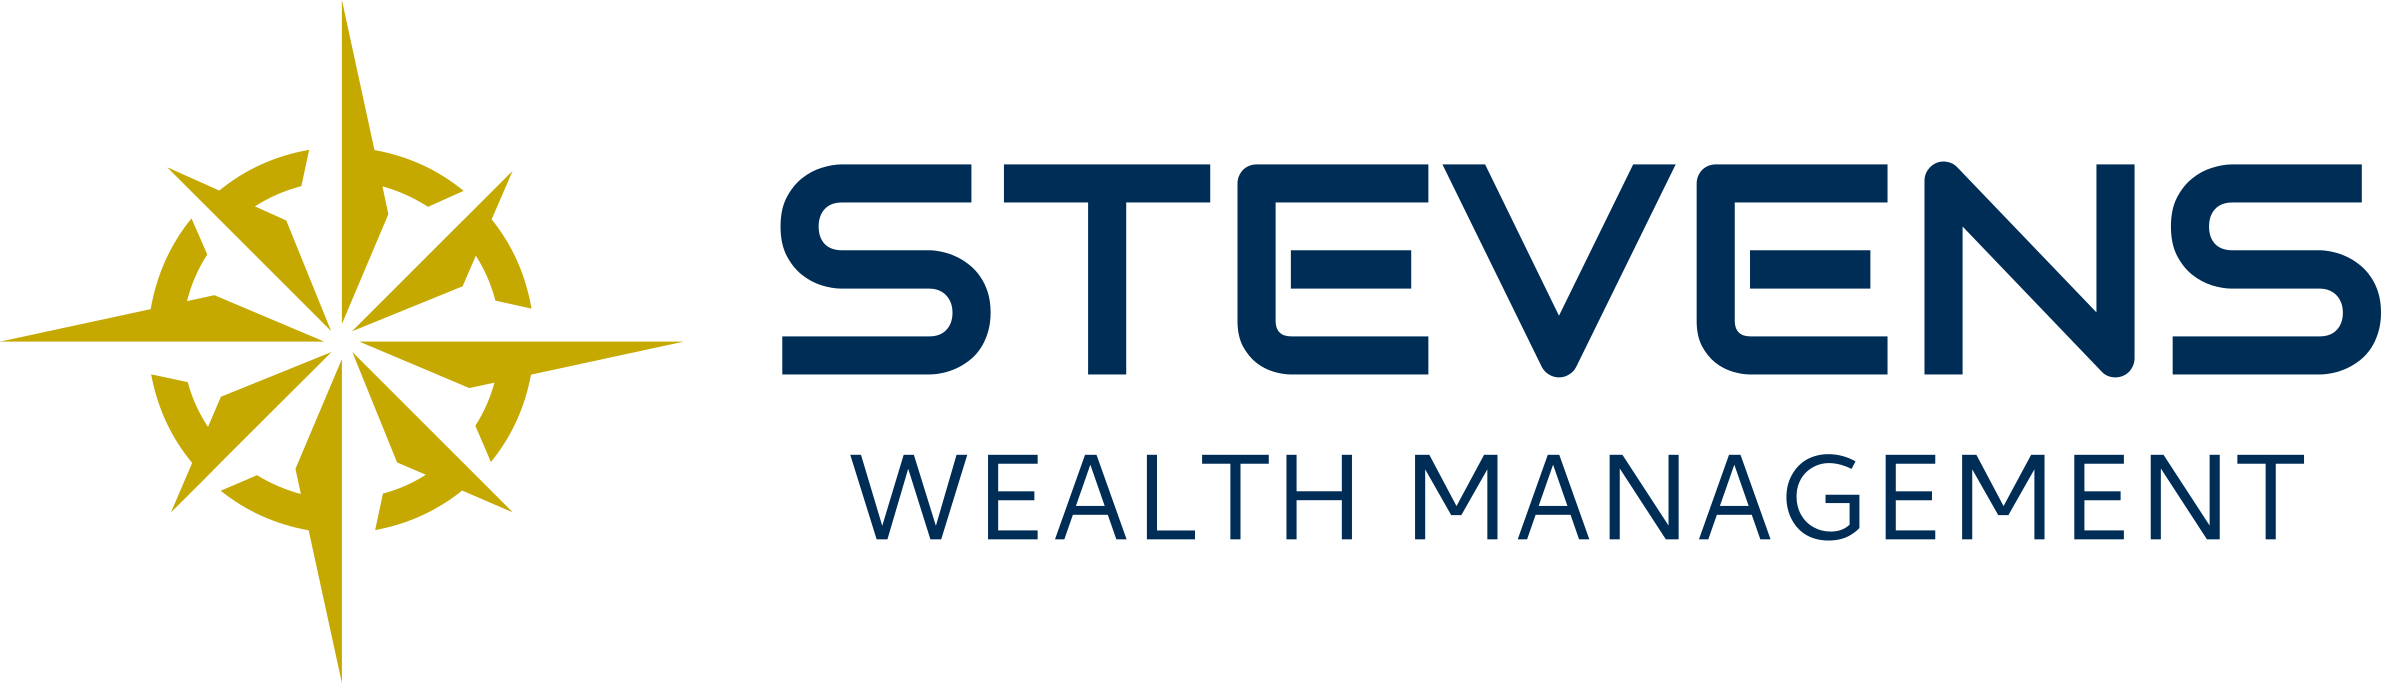 STEVENS WEALTH MANAGEMENT